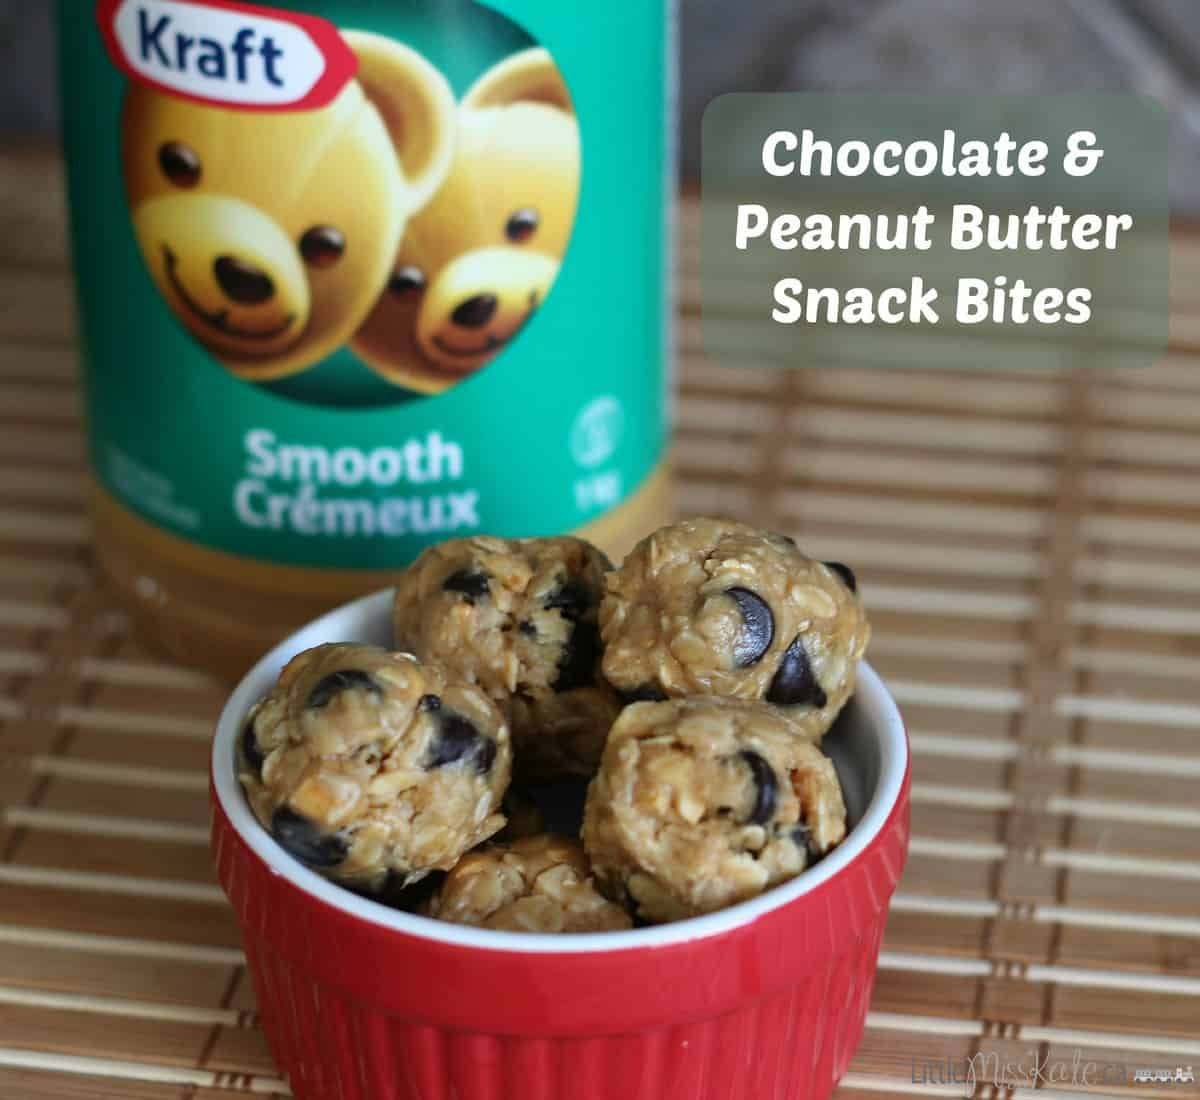 Chocolate and Peanut Butter Snack Bites Recipe after school snack